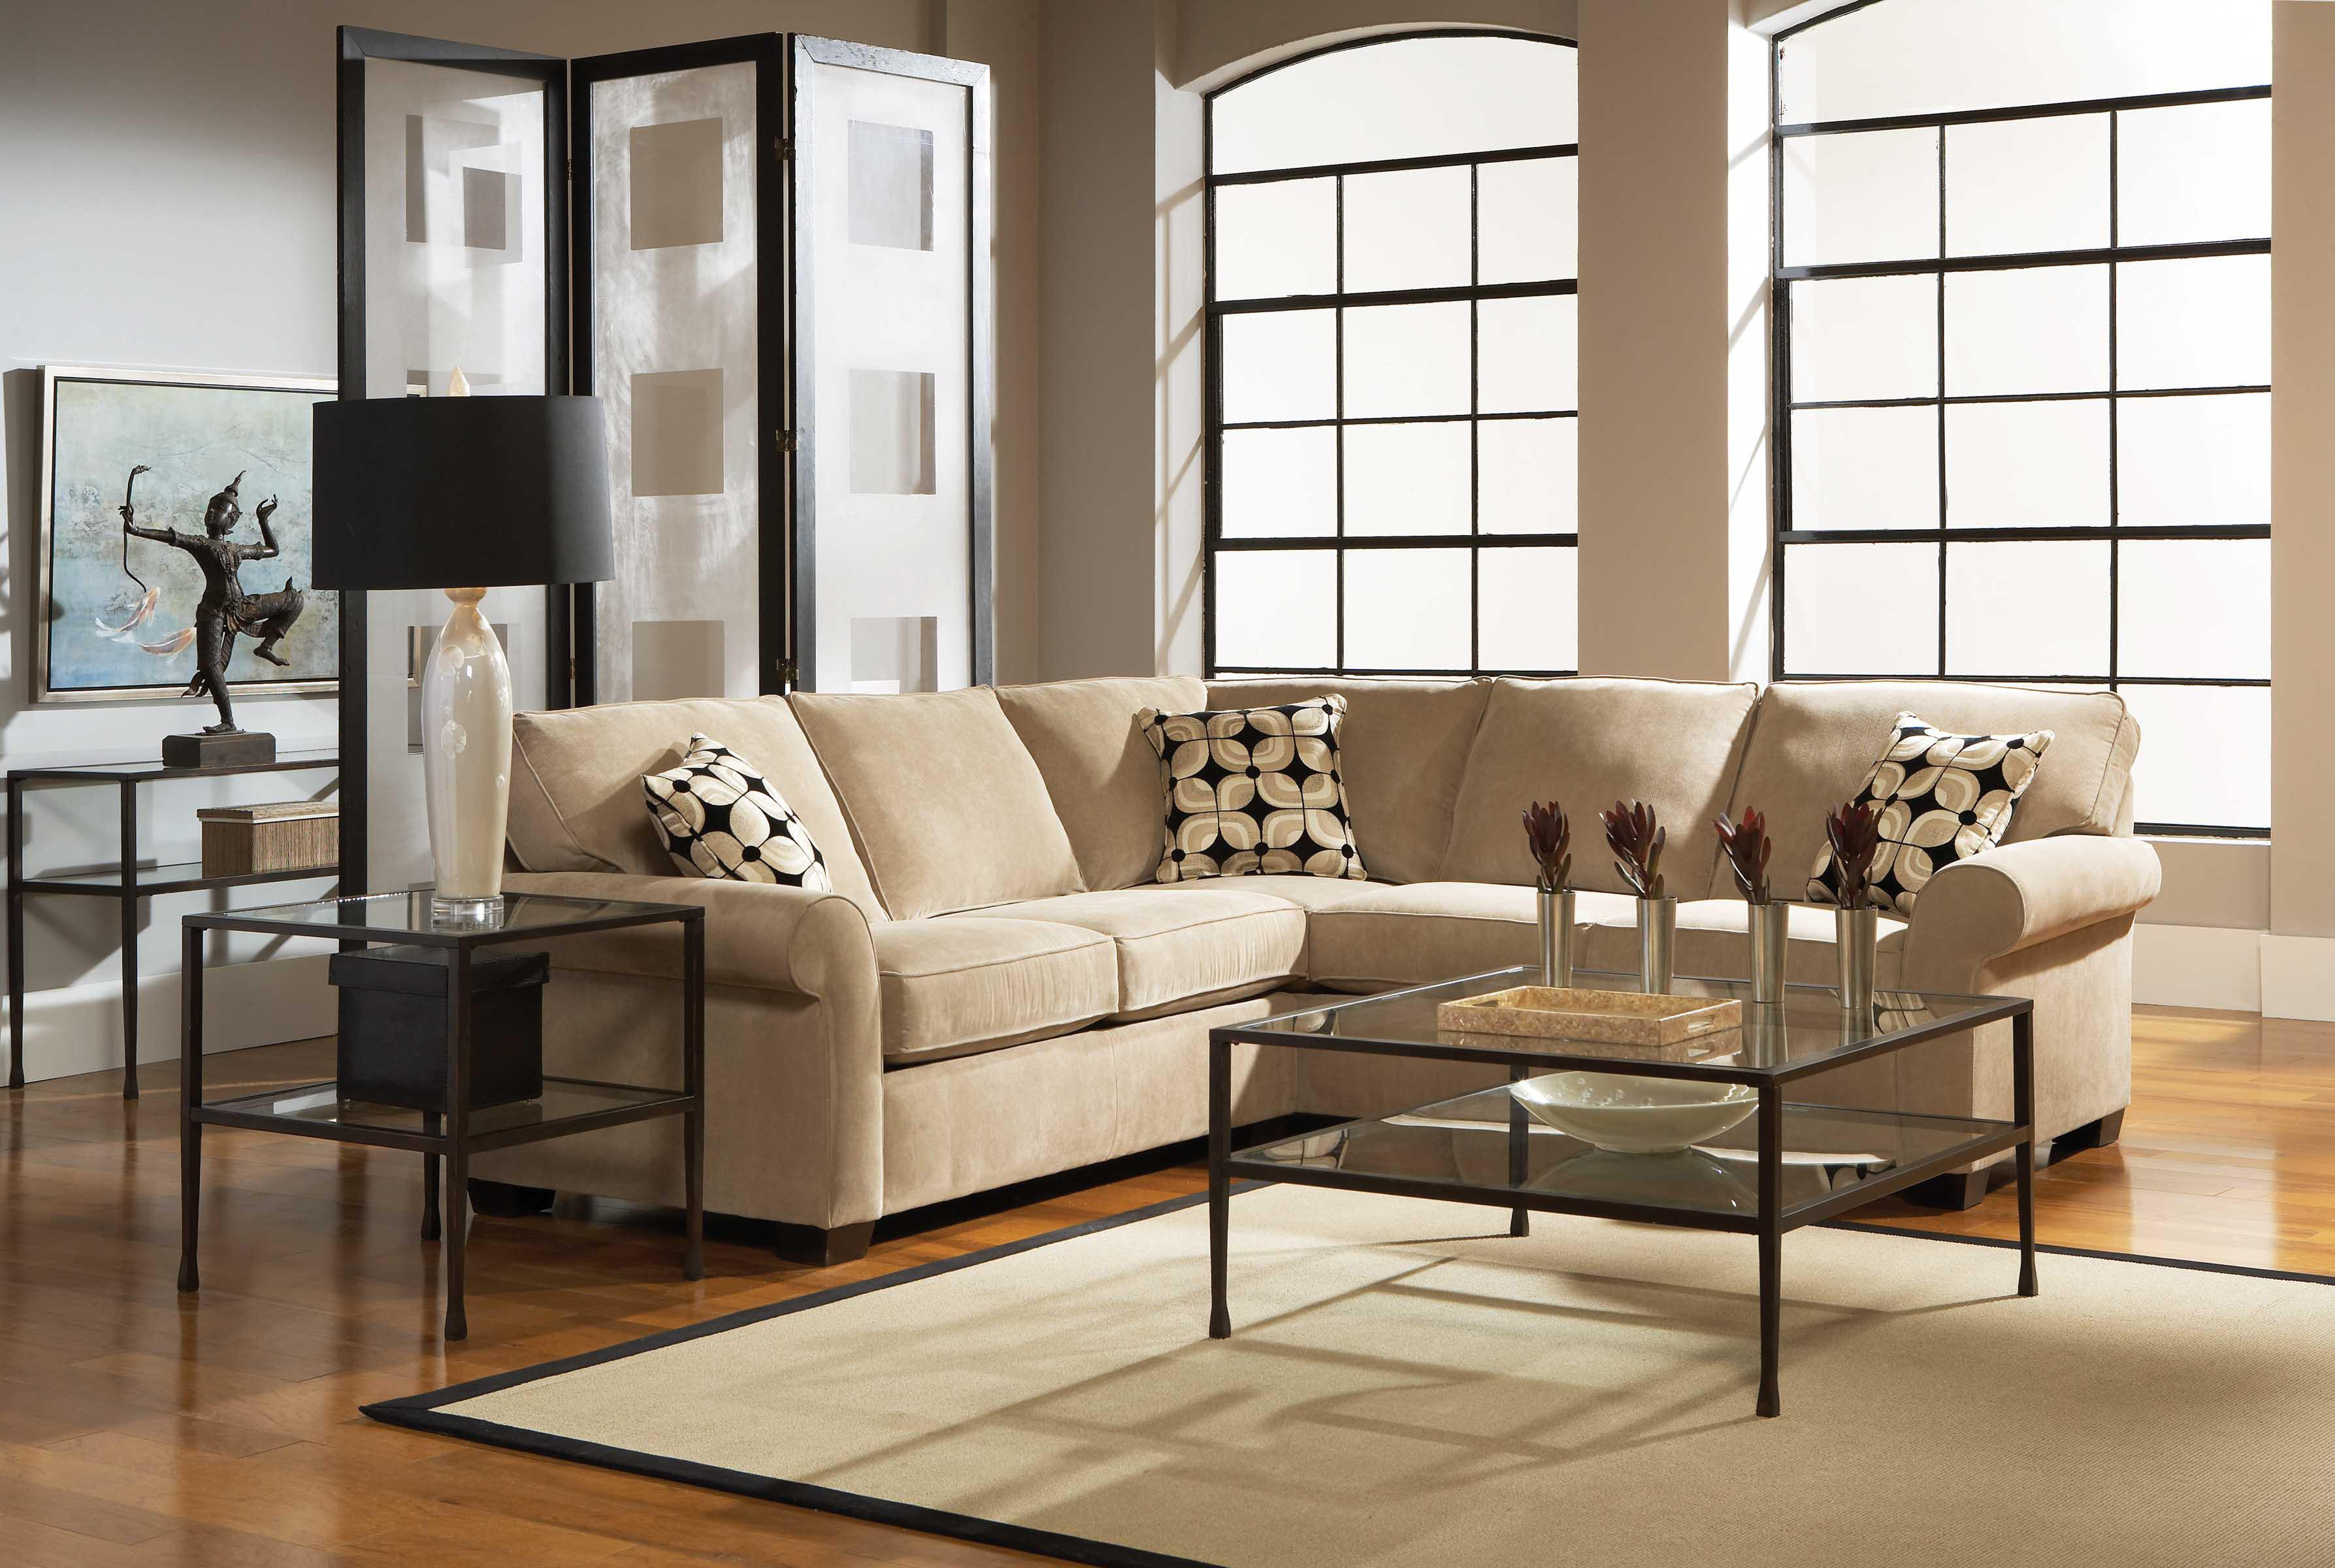 Ethan 6627 By Broyhill Furniture Baers Furniture